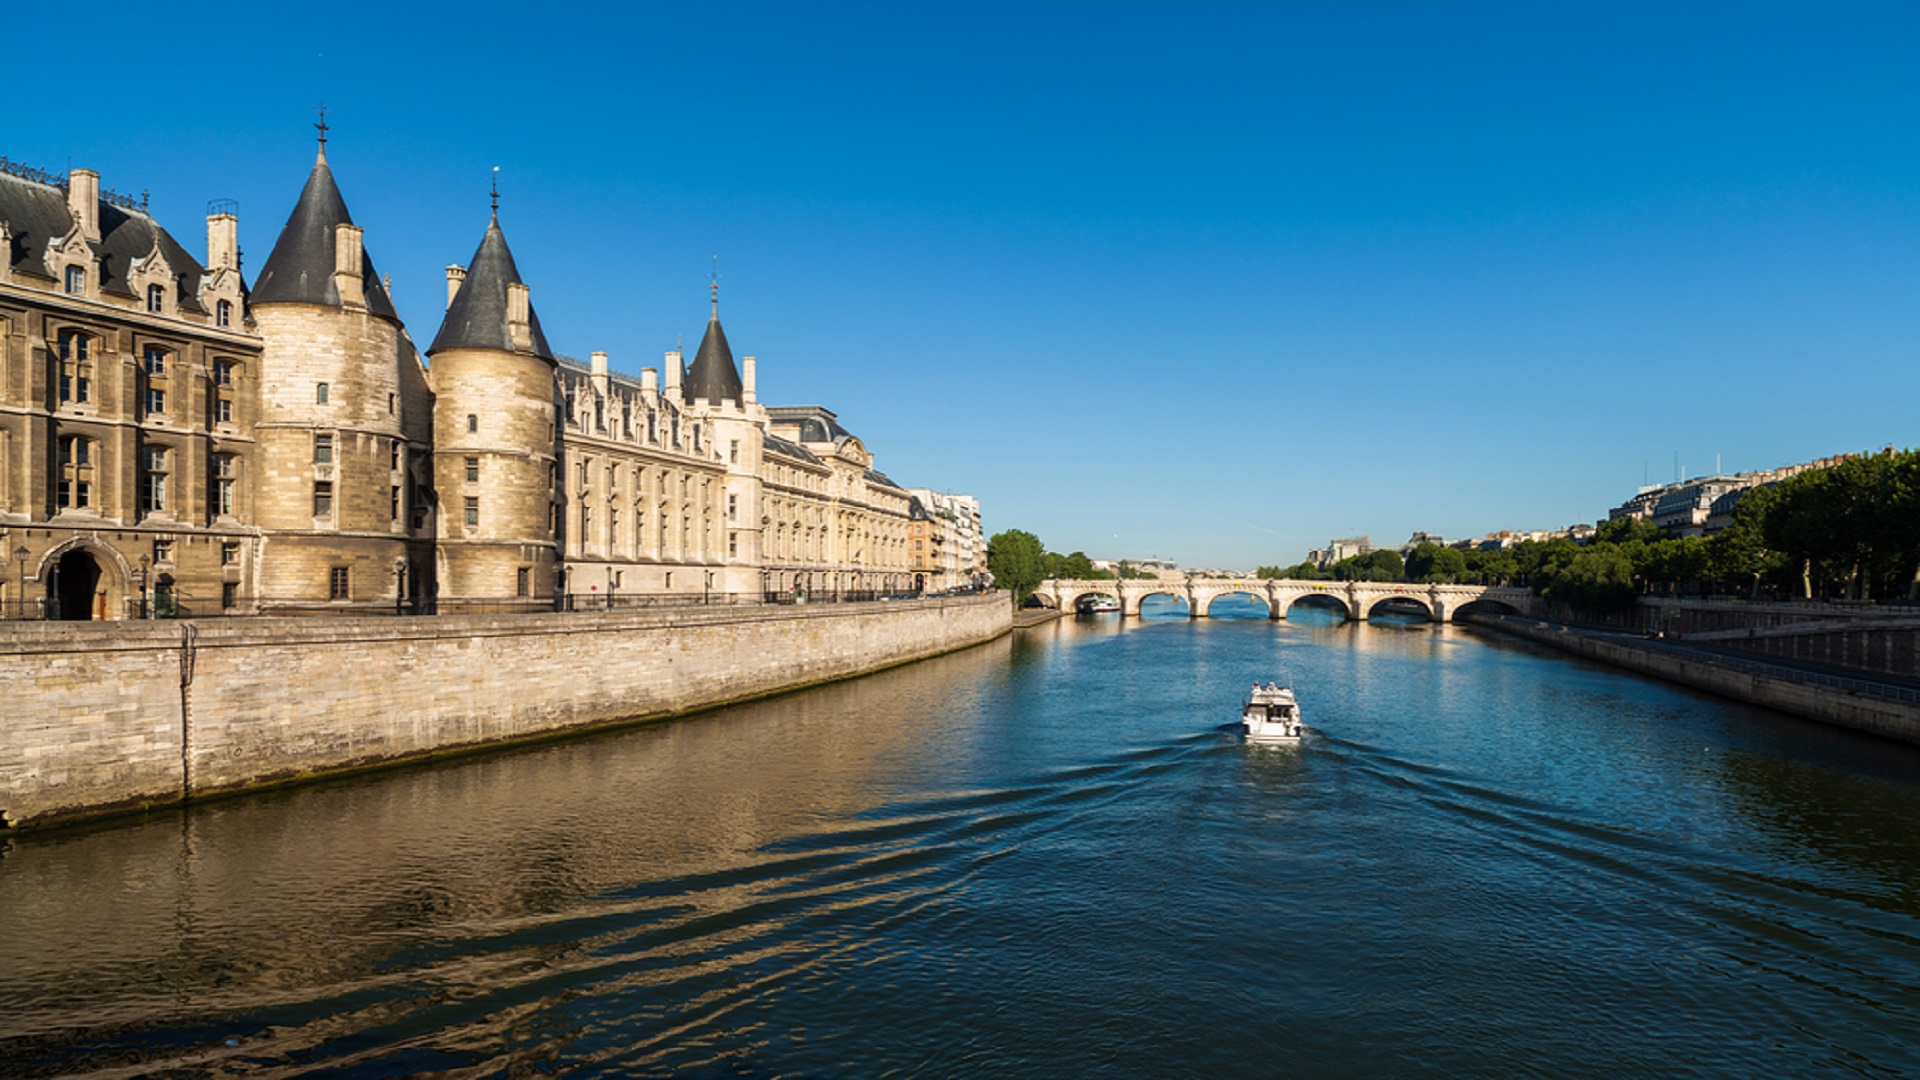 Banks of the Seine River Paris